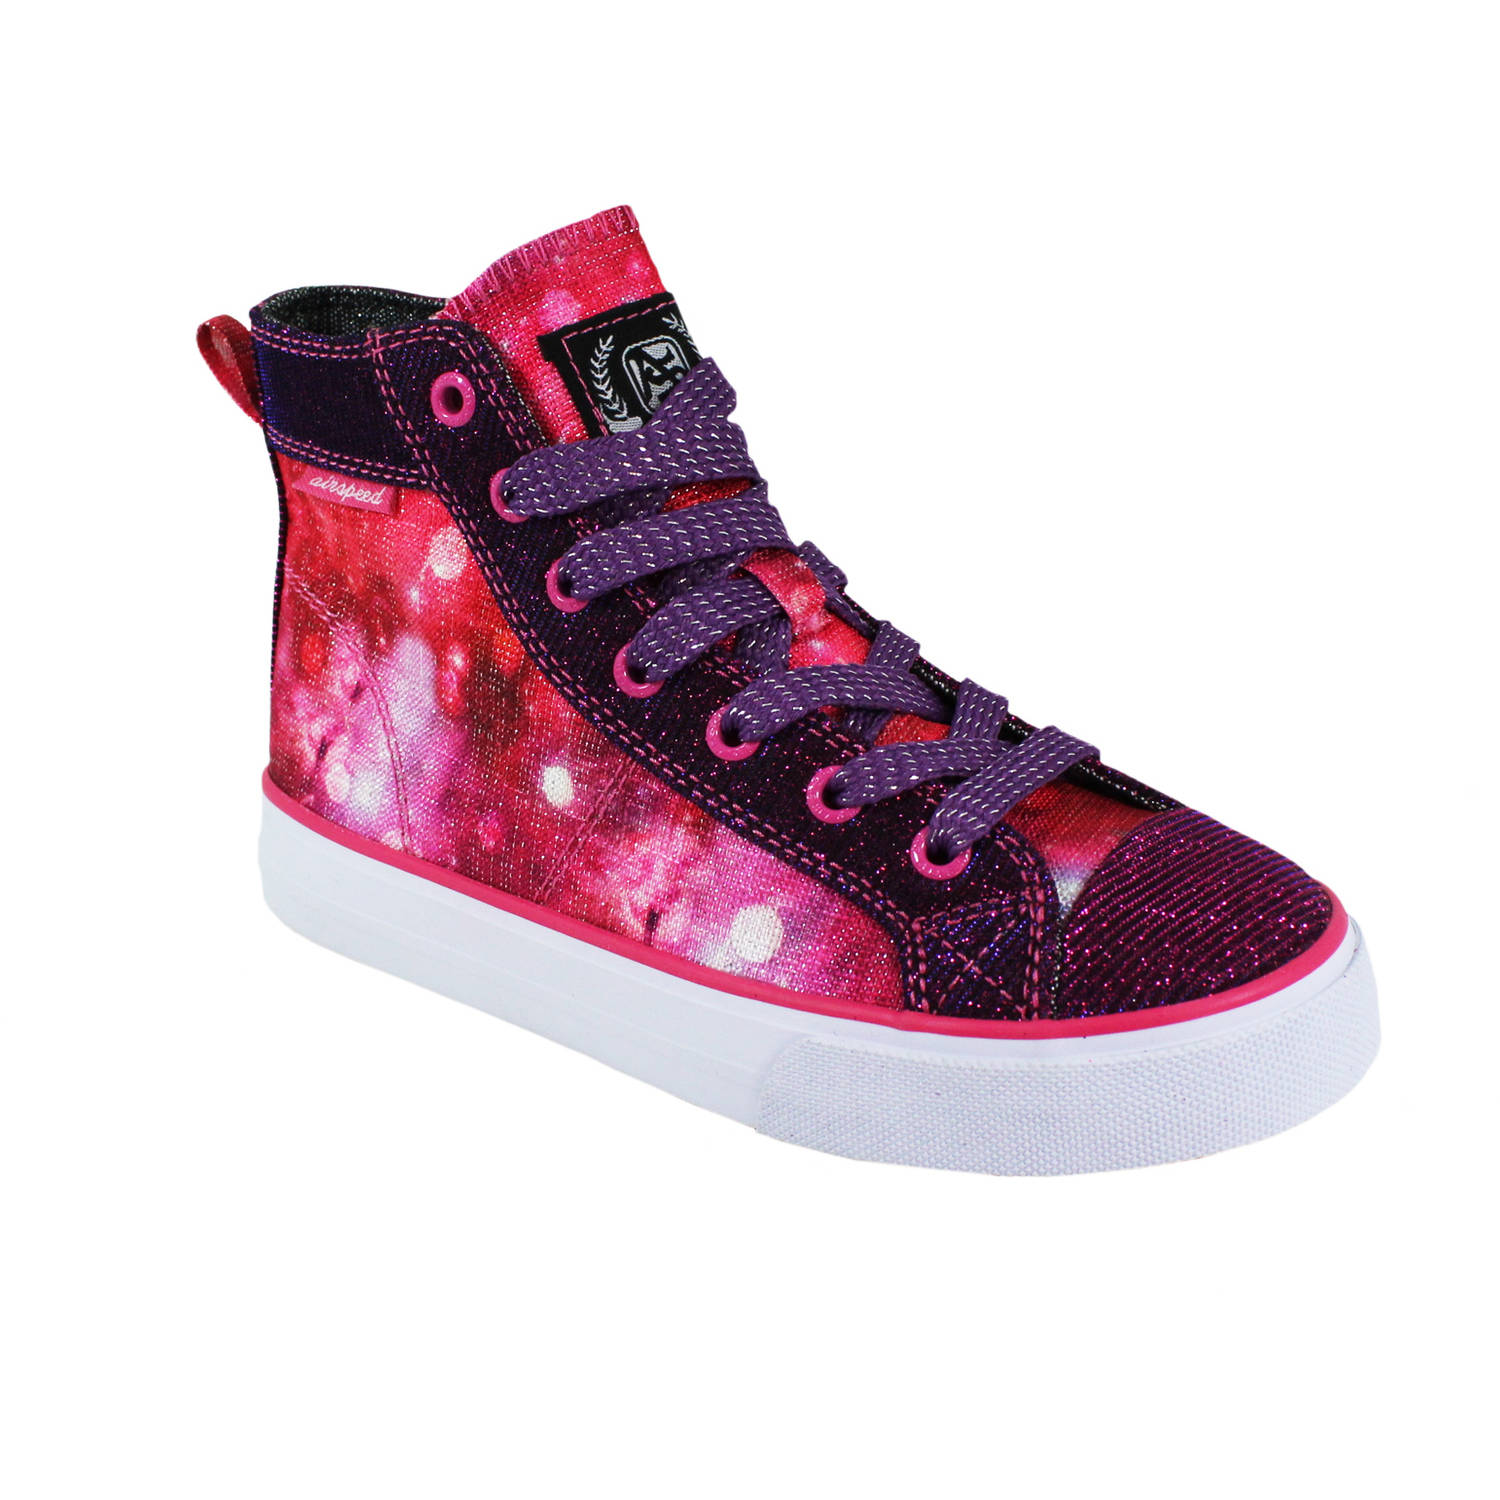 Airspeed Girl's High-top Canvas Sneaker - Exclusive Color